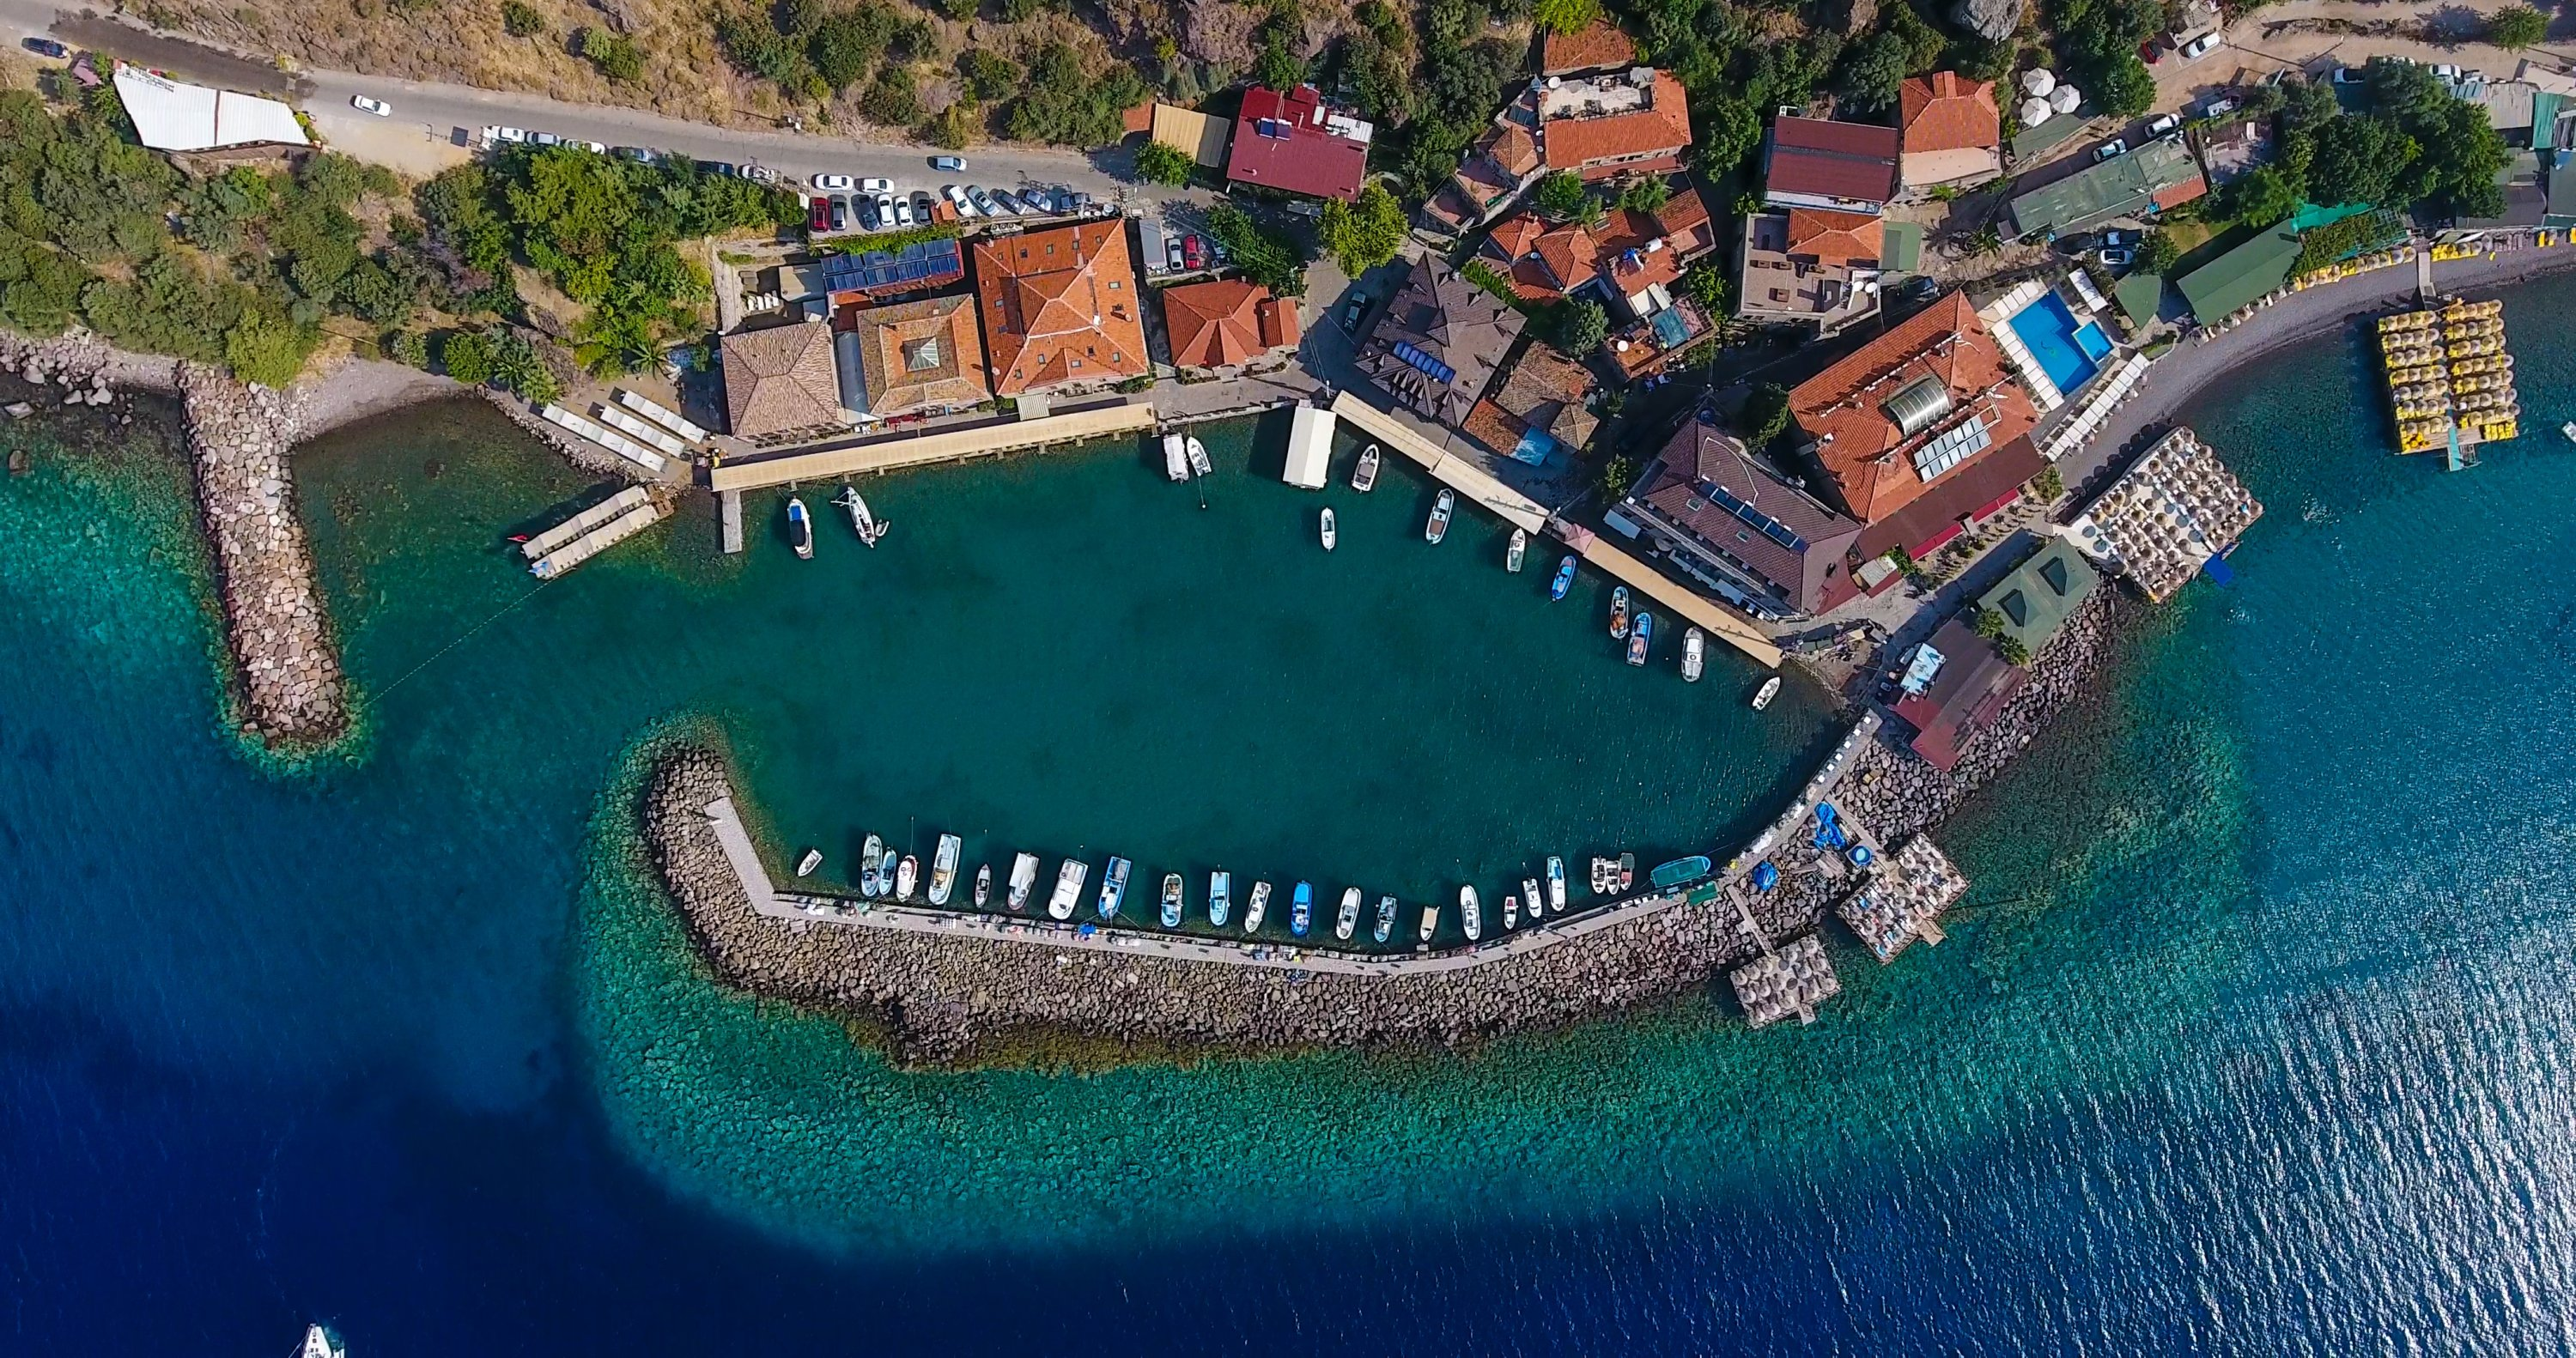 The ancient port city of Assos has been inhabited since it was first founded some 3,000 years ago. (iStock Photo)